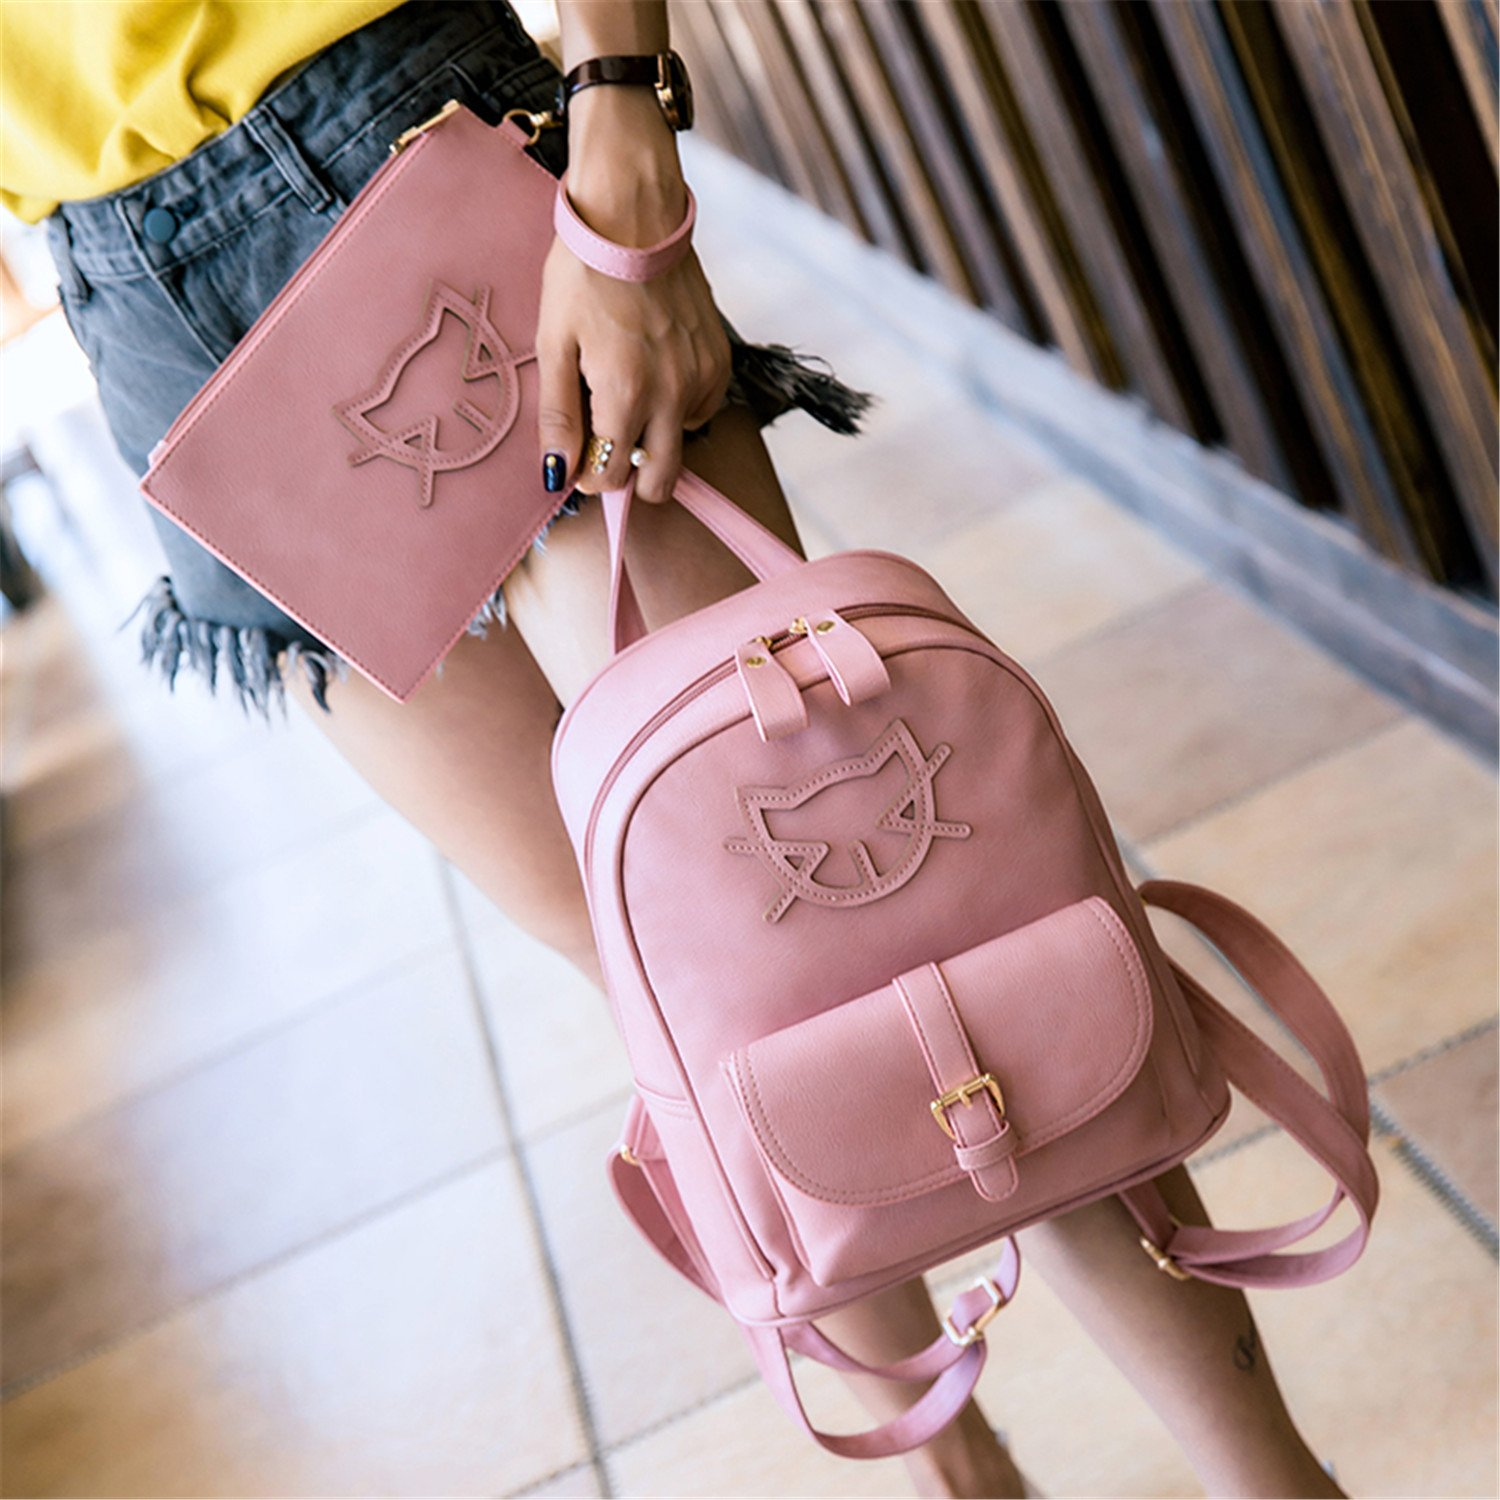 Amazon.com: Toping Fine PU Leather Fashion Bag Cute Backpack Women Designer Bag Cat Cotton School Bags For Teenagers Backpacks Girls Hello Kitty black ...